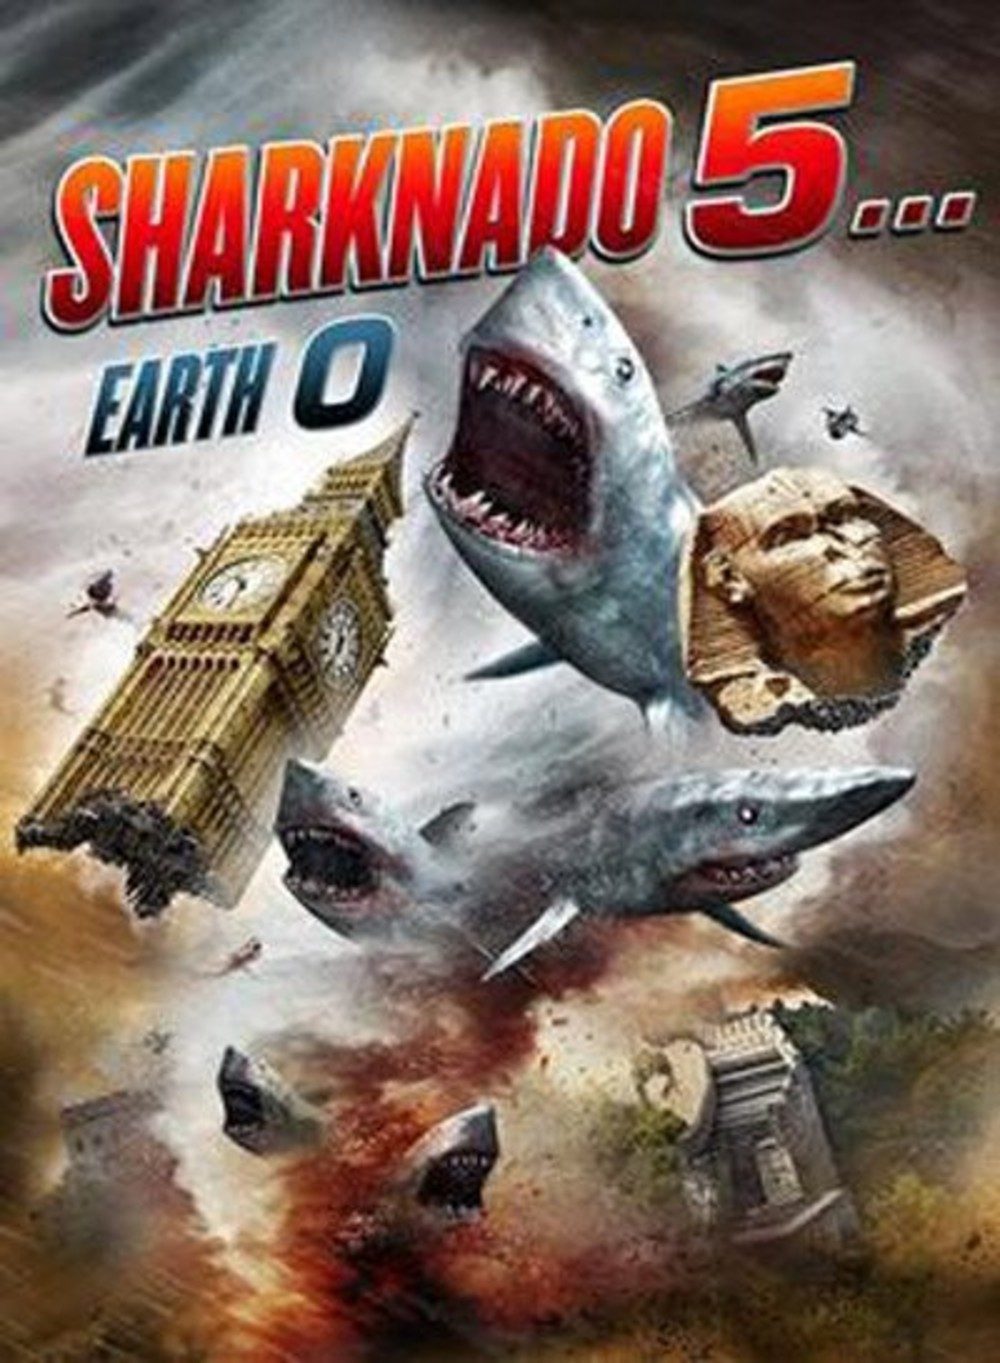 Sharknado 5… Earth 0